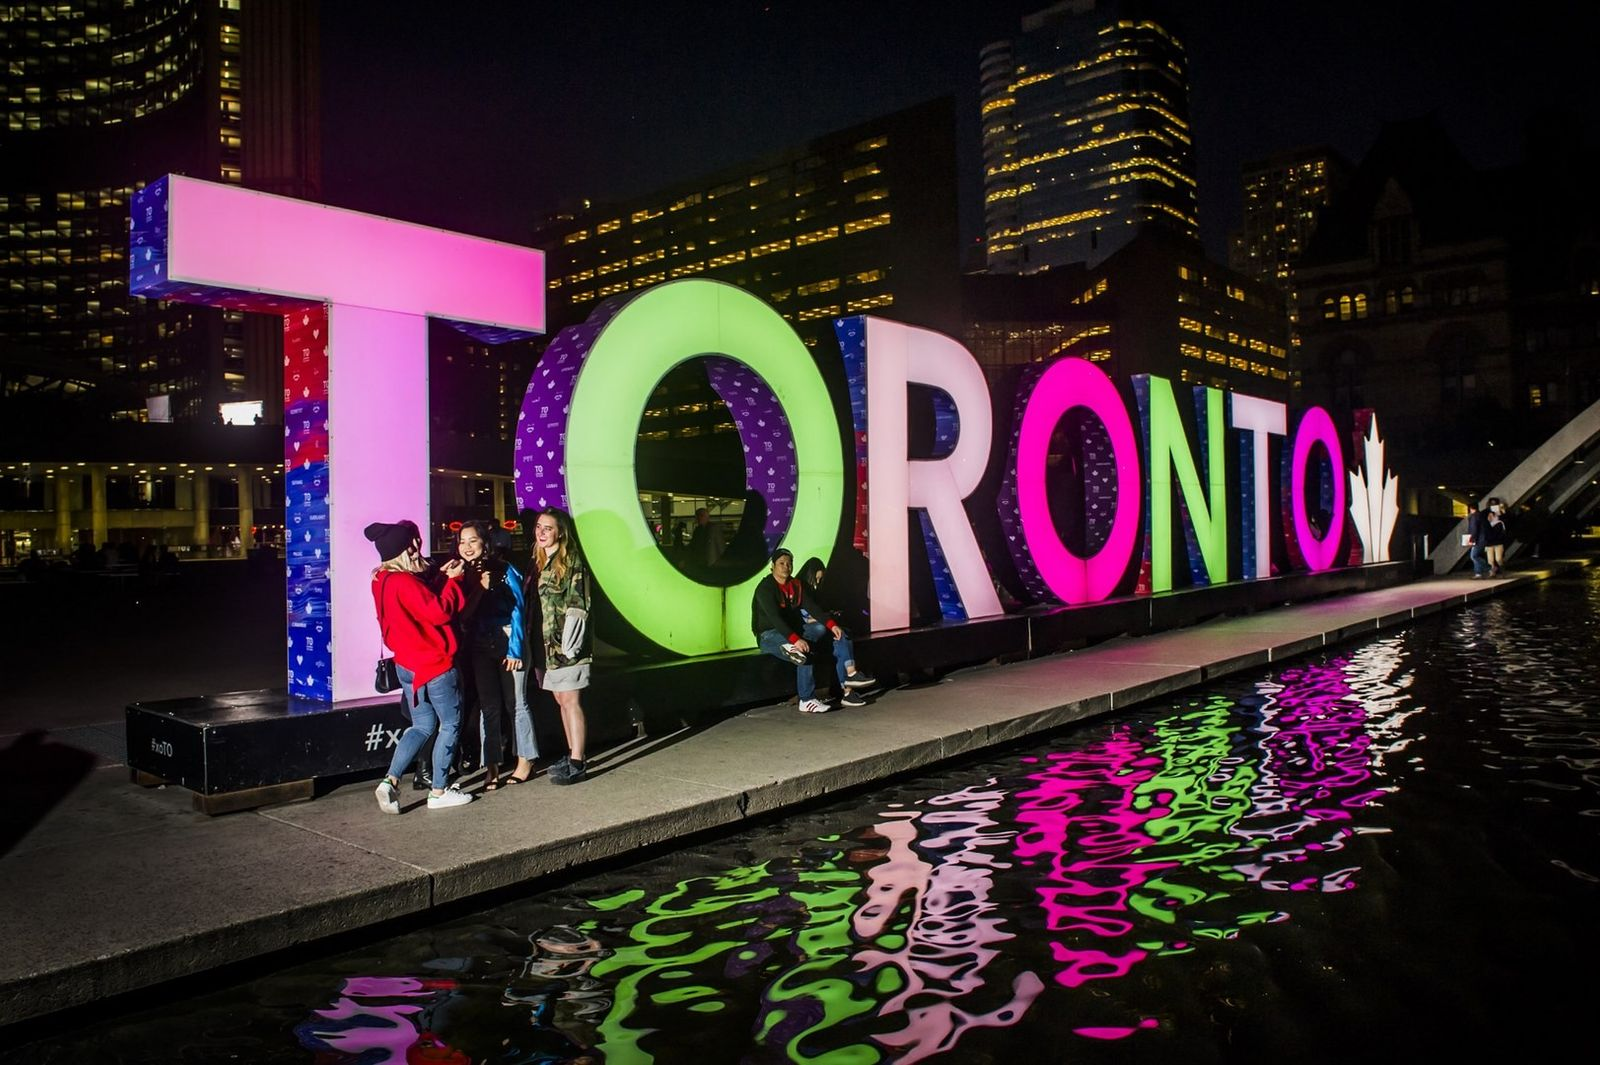 The illuminated 3D TORONTO sign at Nathan Phillips Square is one of Toronto's most photo-worthy spots.